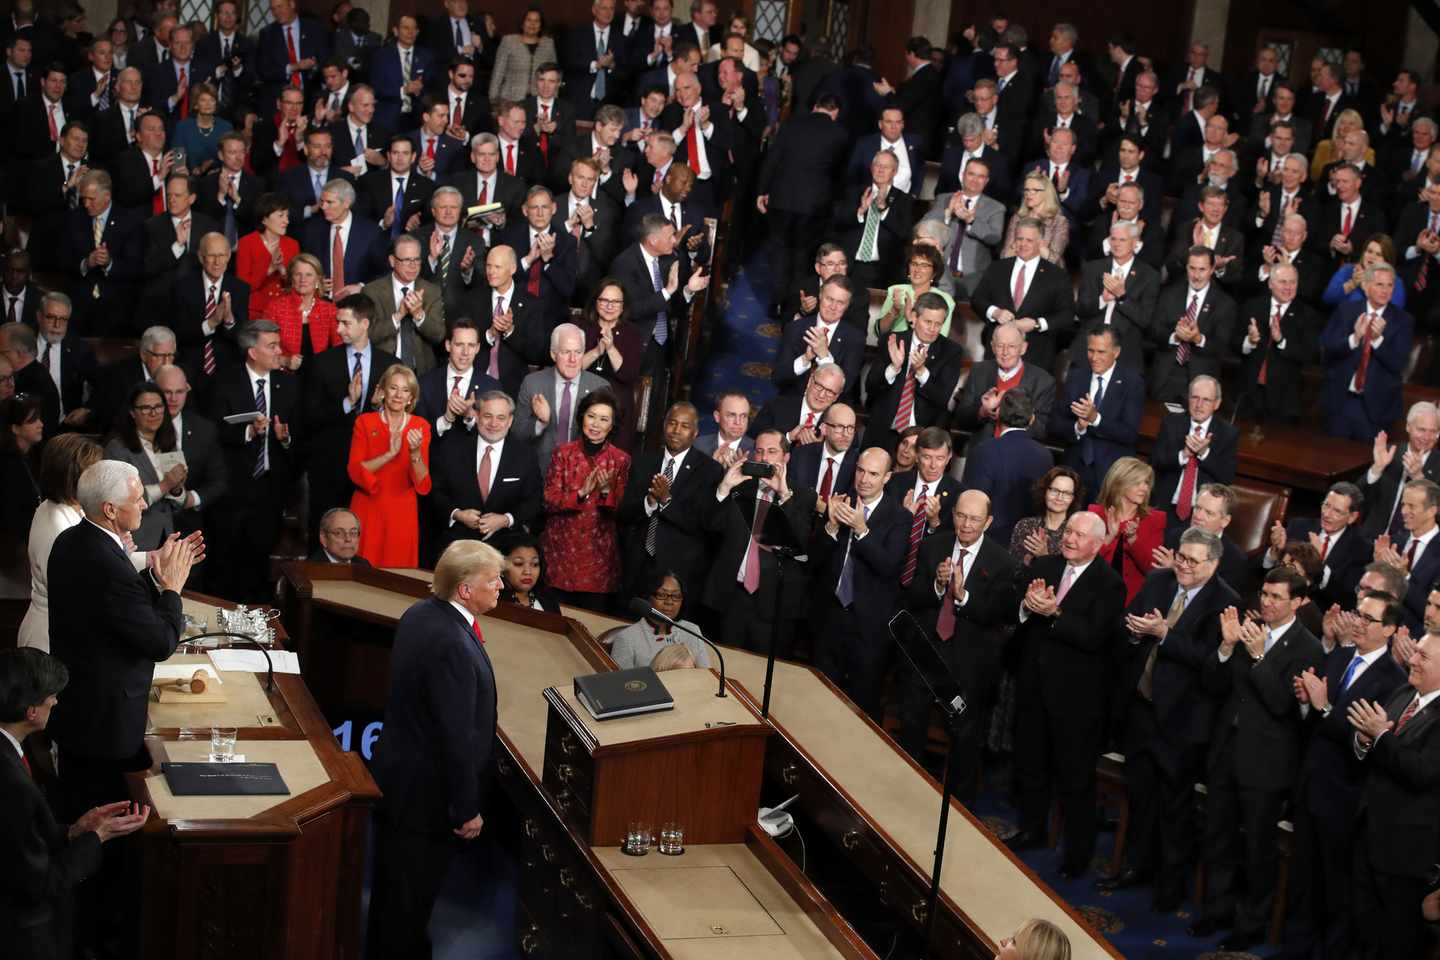 Trump Takes Victory Lap While Dems Fume